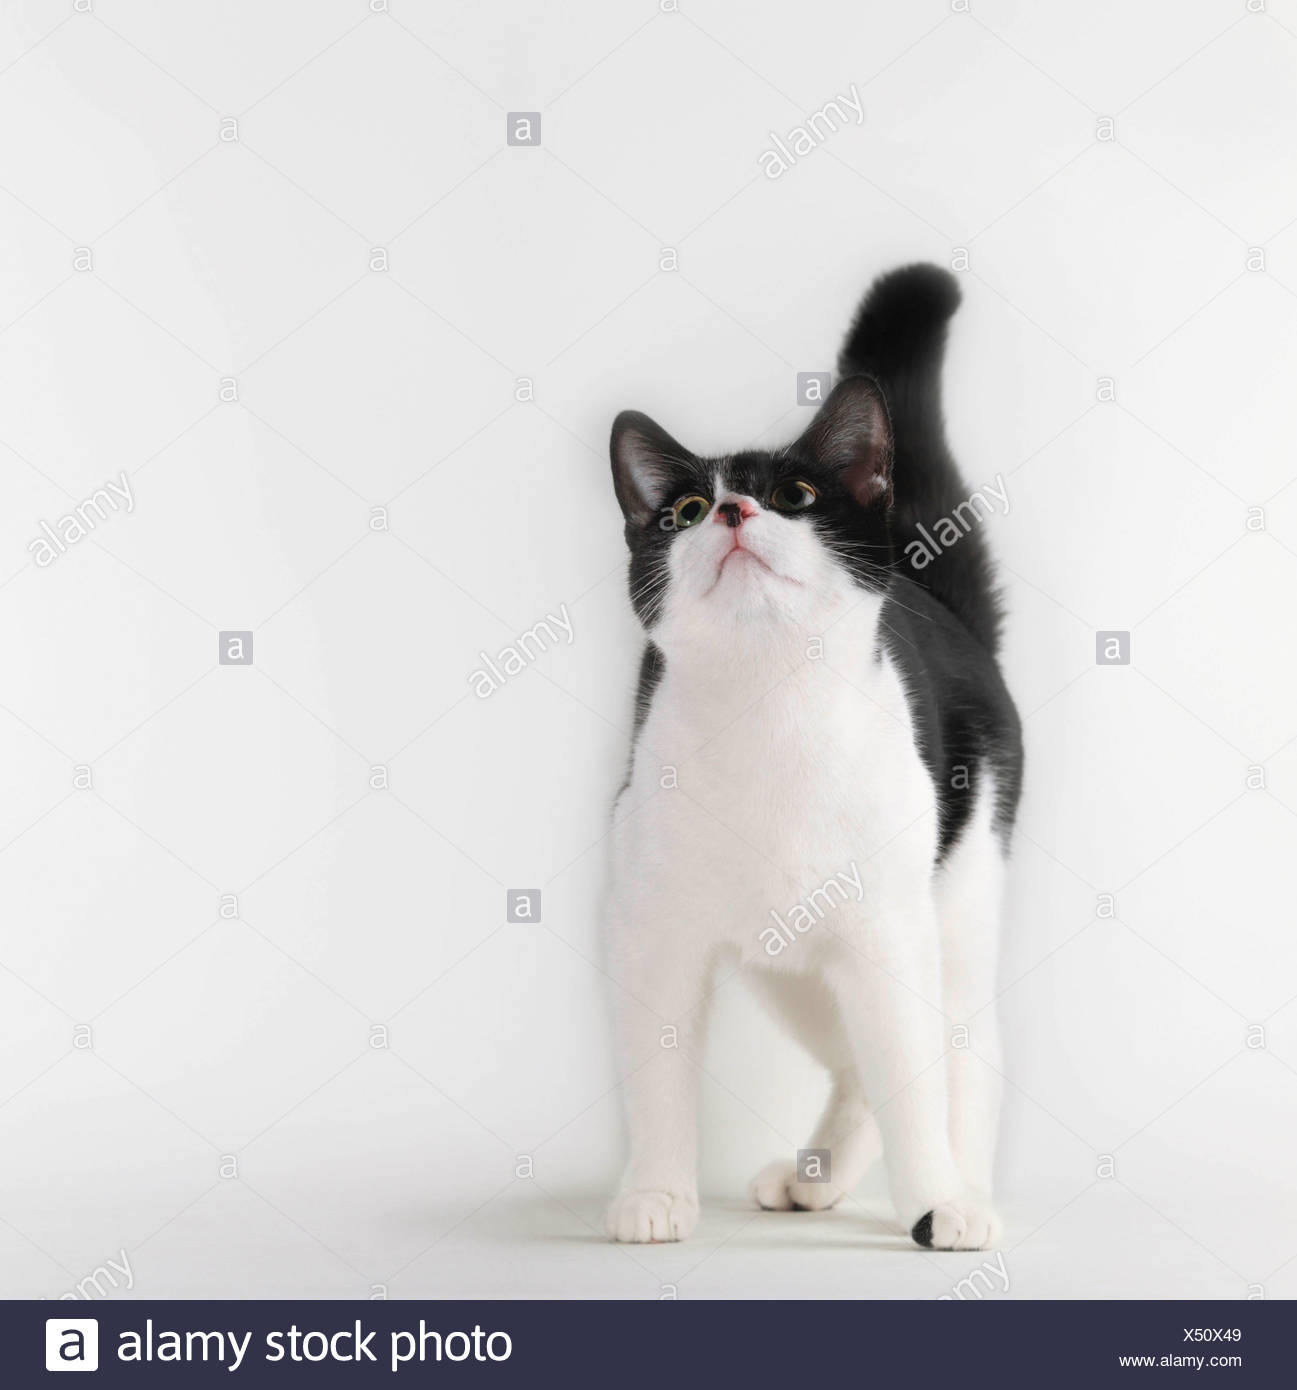 Black and white cat looking up - Stock Image